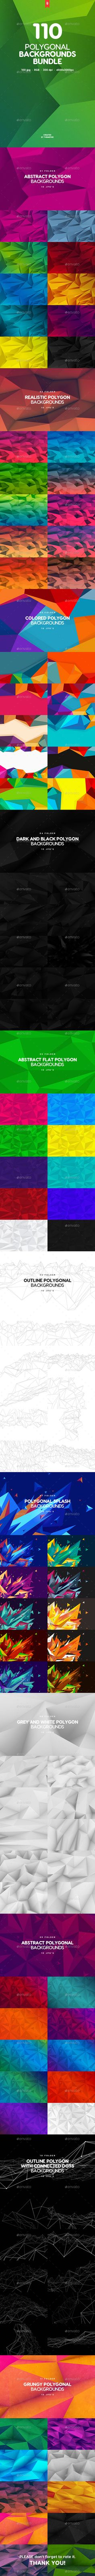 110 Abstract Different Polygonal Backgrounds Bundle by themefire This pack contains 110 jpg abstract different polygonal backgrounds for your projects. You can use these backgrounds in the differ